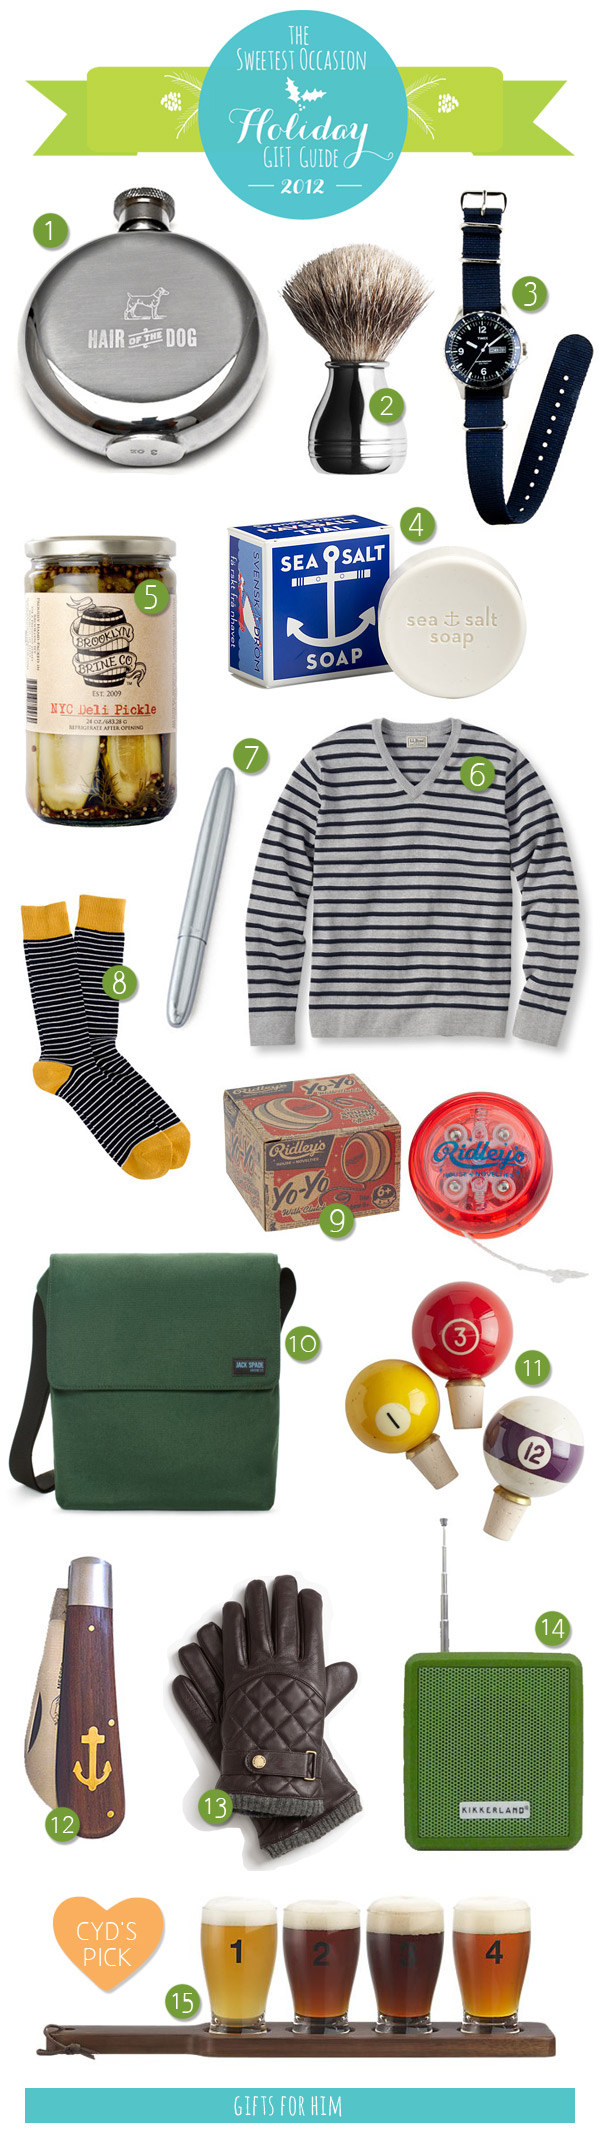 The Gift Guide: Gifts for Him | Gift, Christmas 2014 and Stocking ...